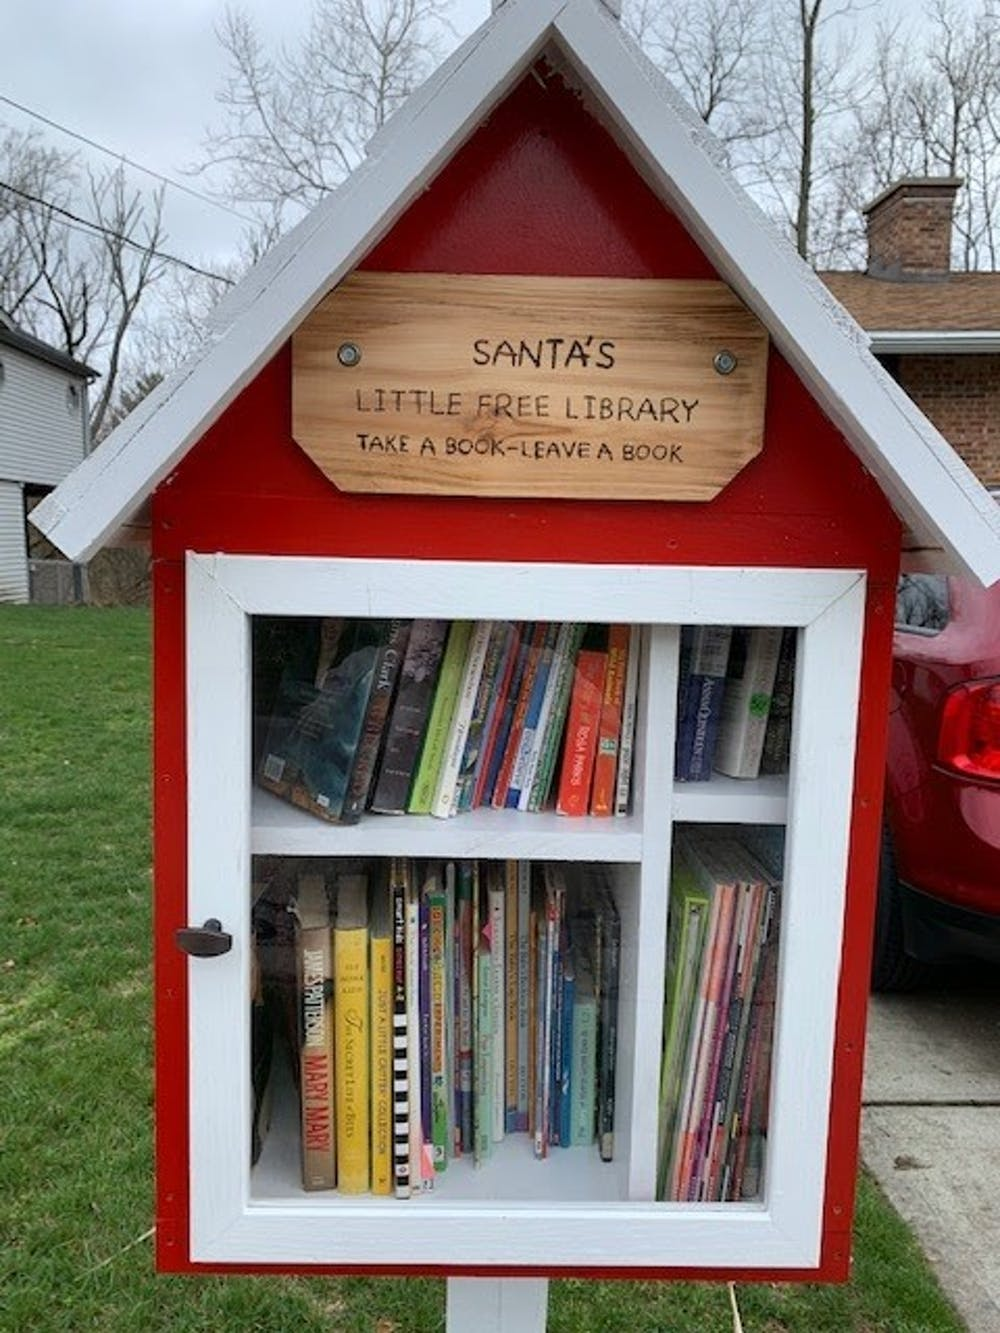 <p>Trying to keep a sense of community during the pandemic, one Oxford resident has created a little library in front of his home.</p>